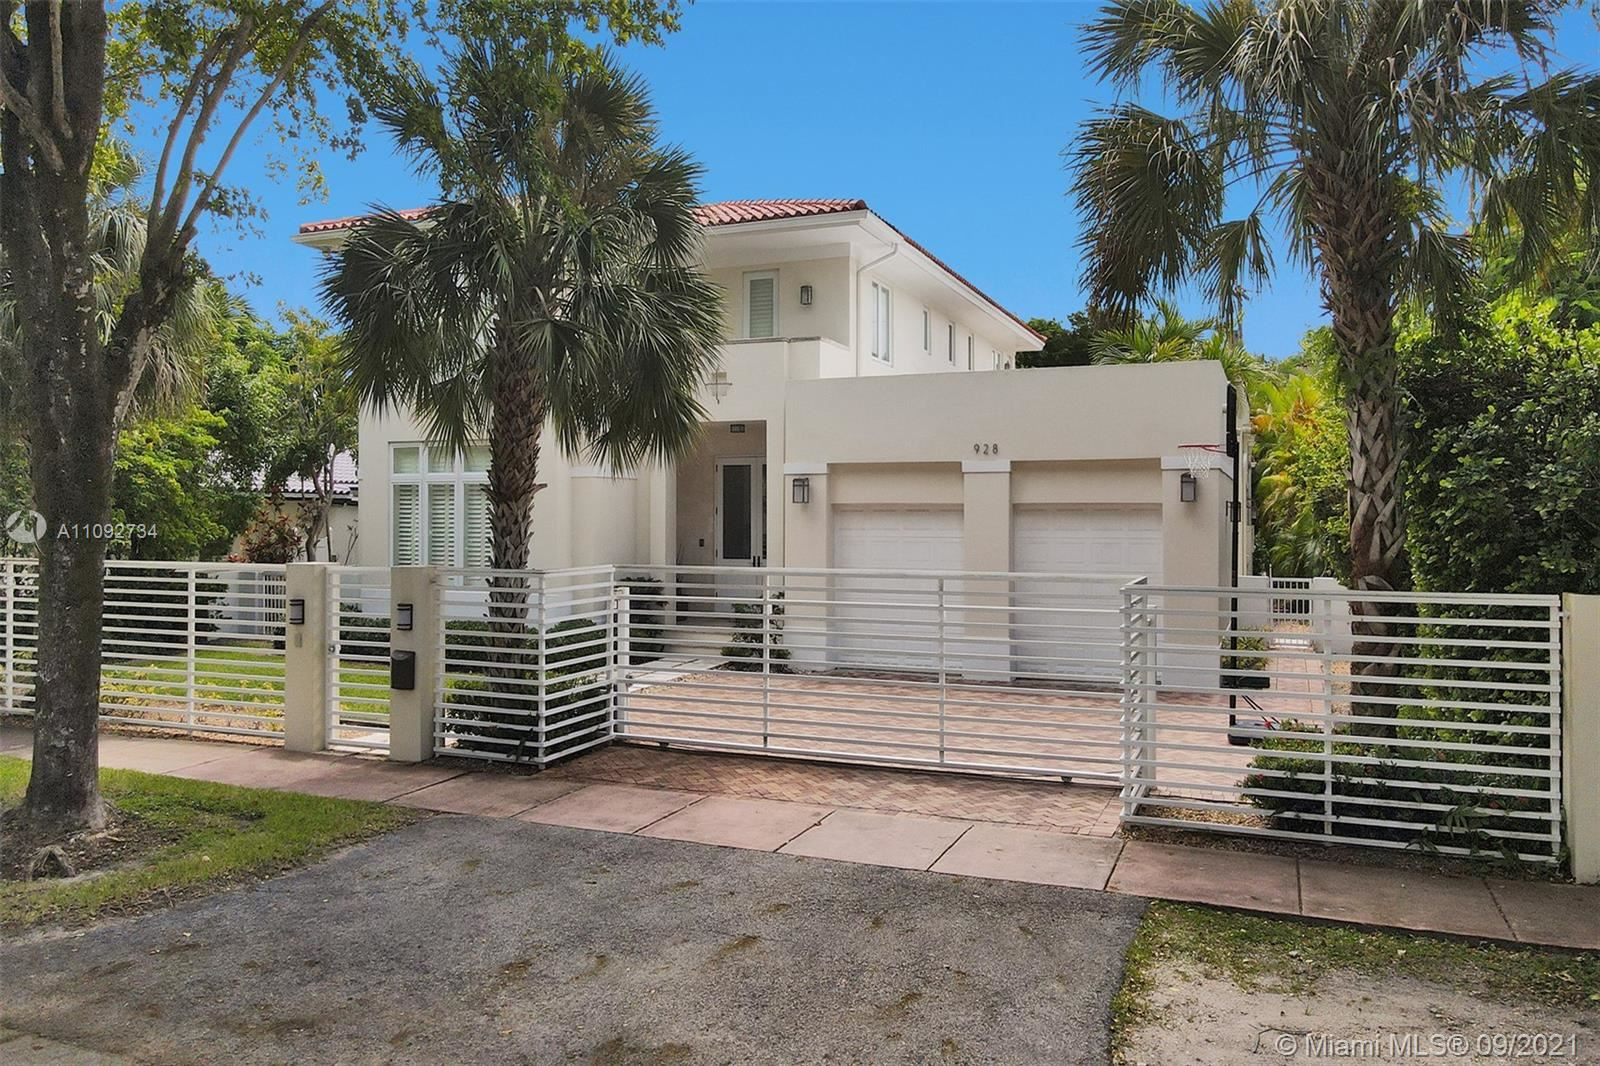 928 Palermo Ave, Coral Gables, FL 33134 - #: A11092734